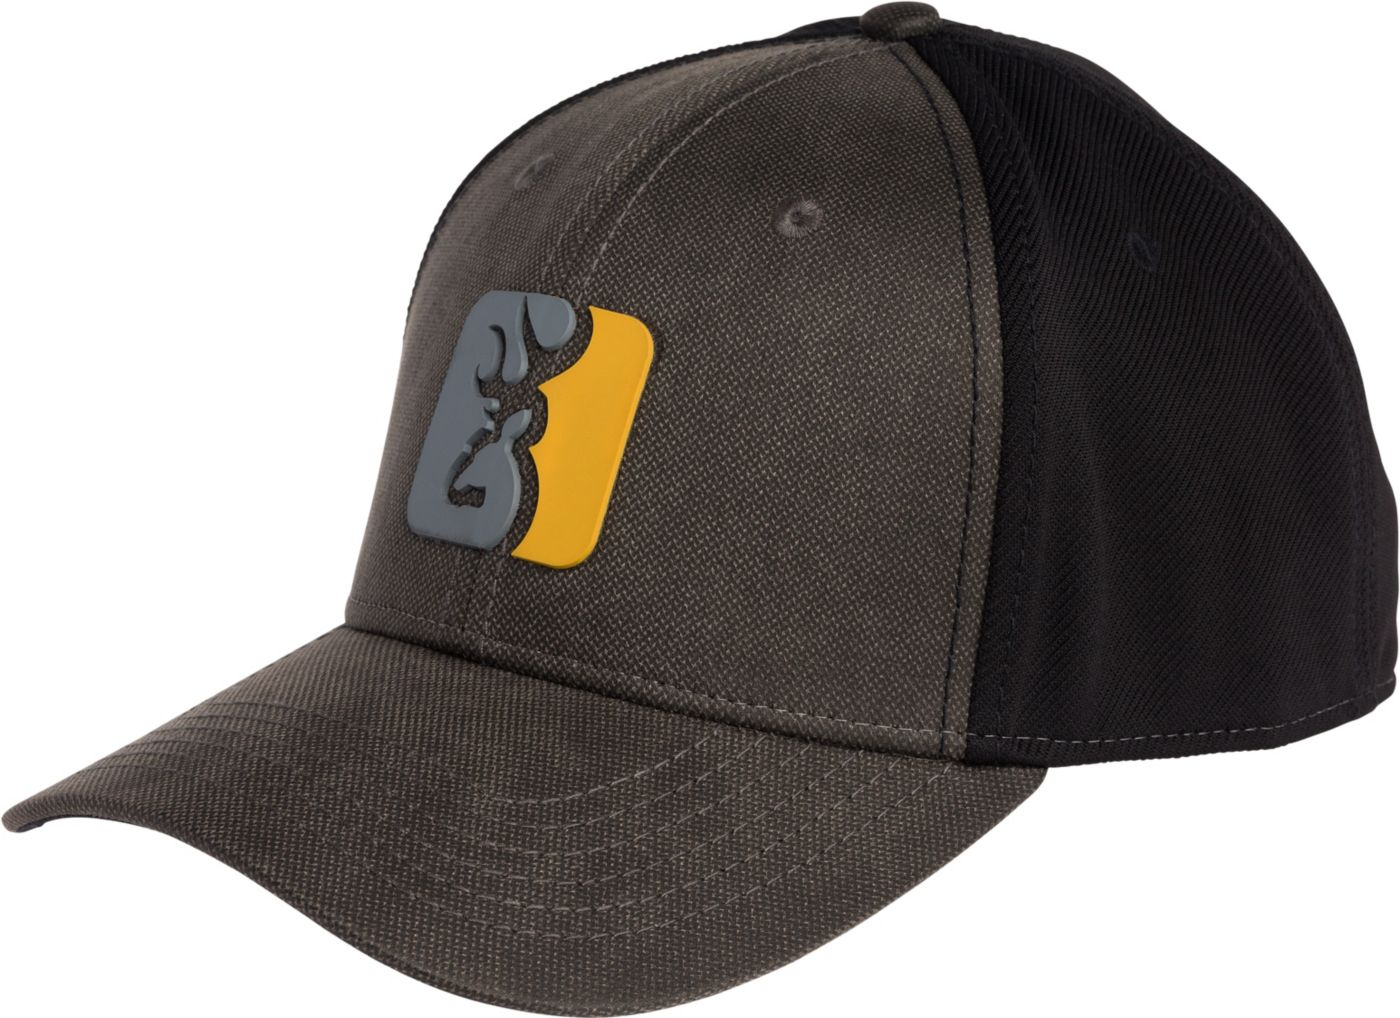 Browning Men's Black and Gold Hat